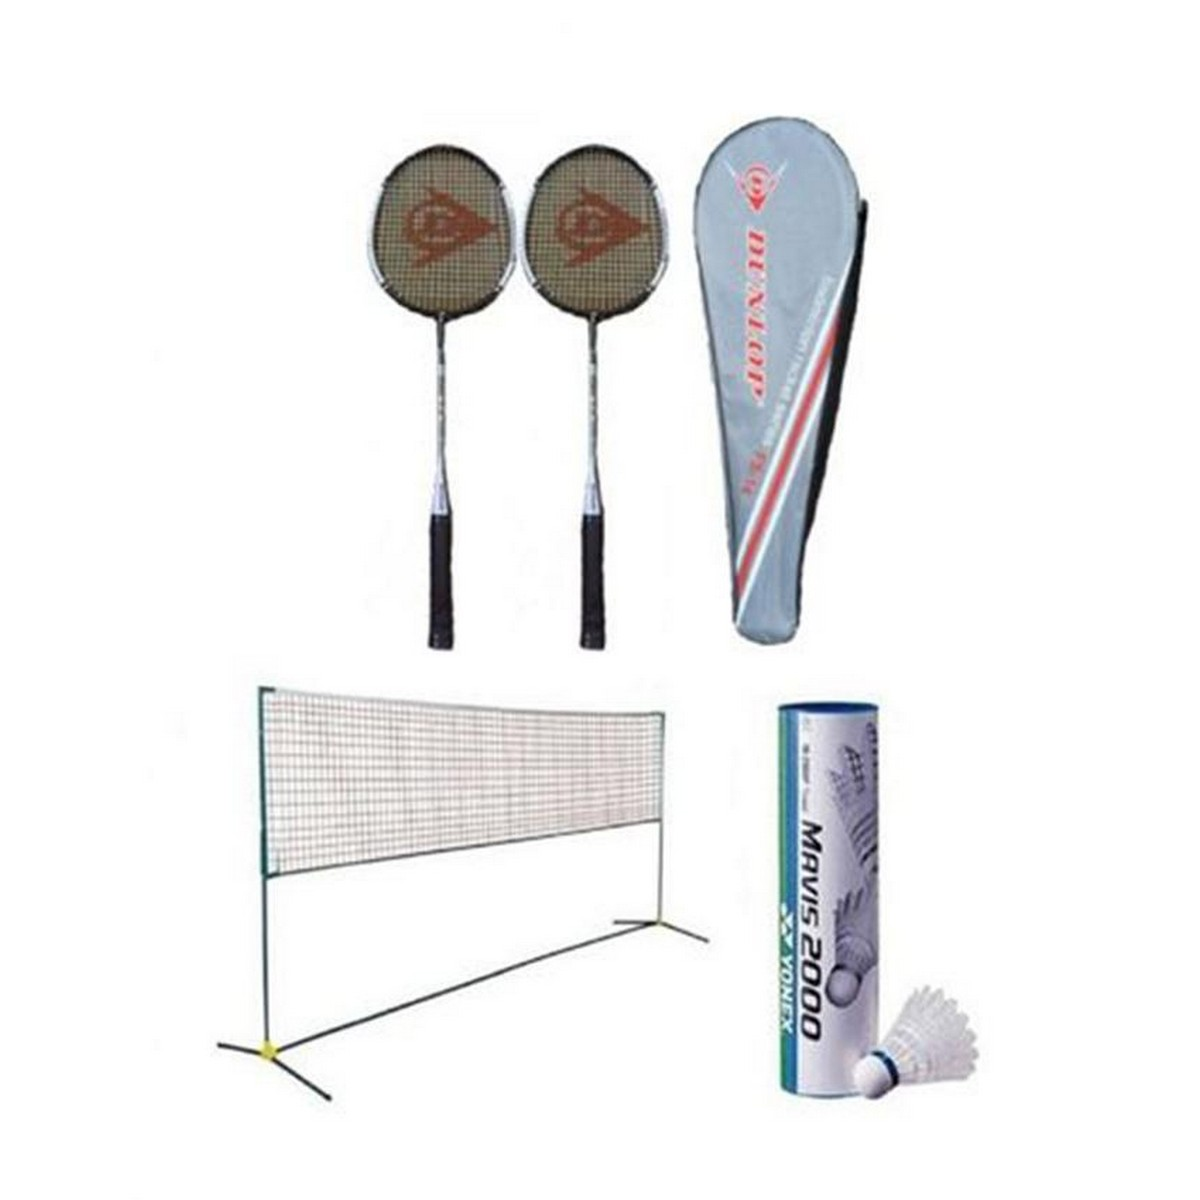 Pack of 9 - Badminton Set - Multicolour pair of racket 6 shuttle with net included